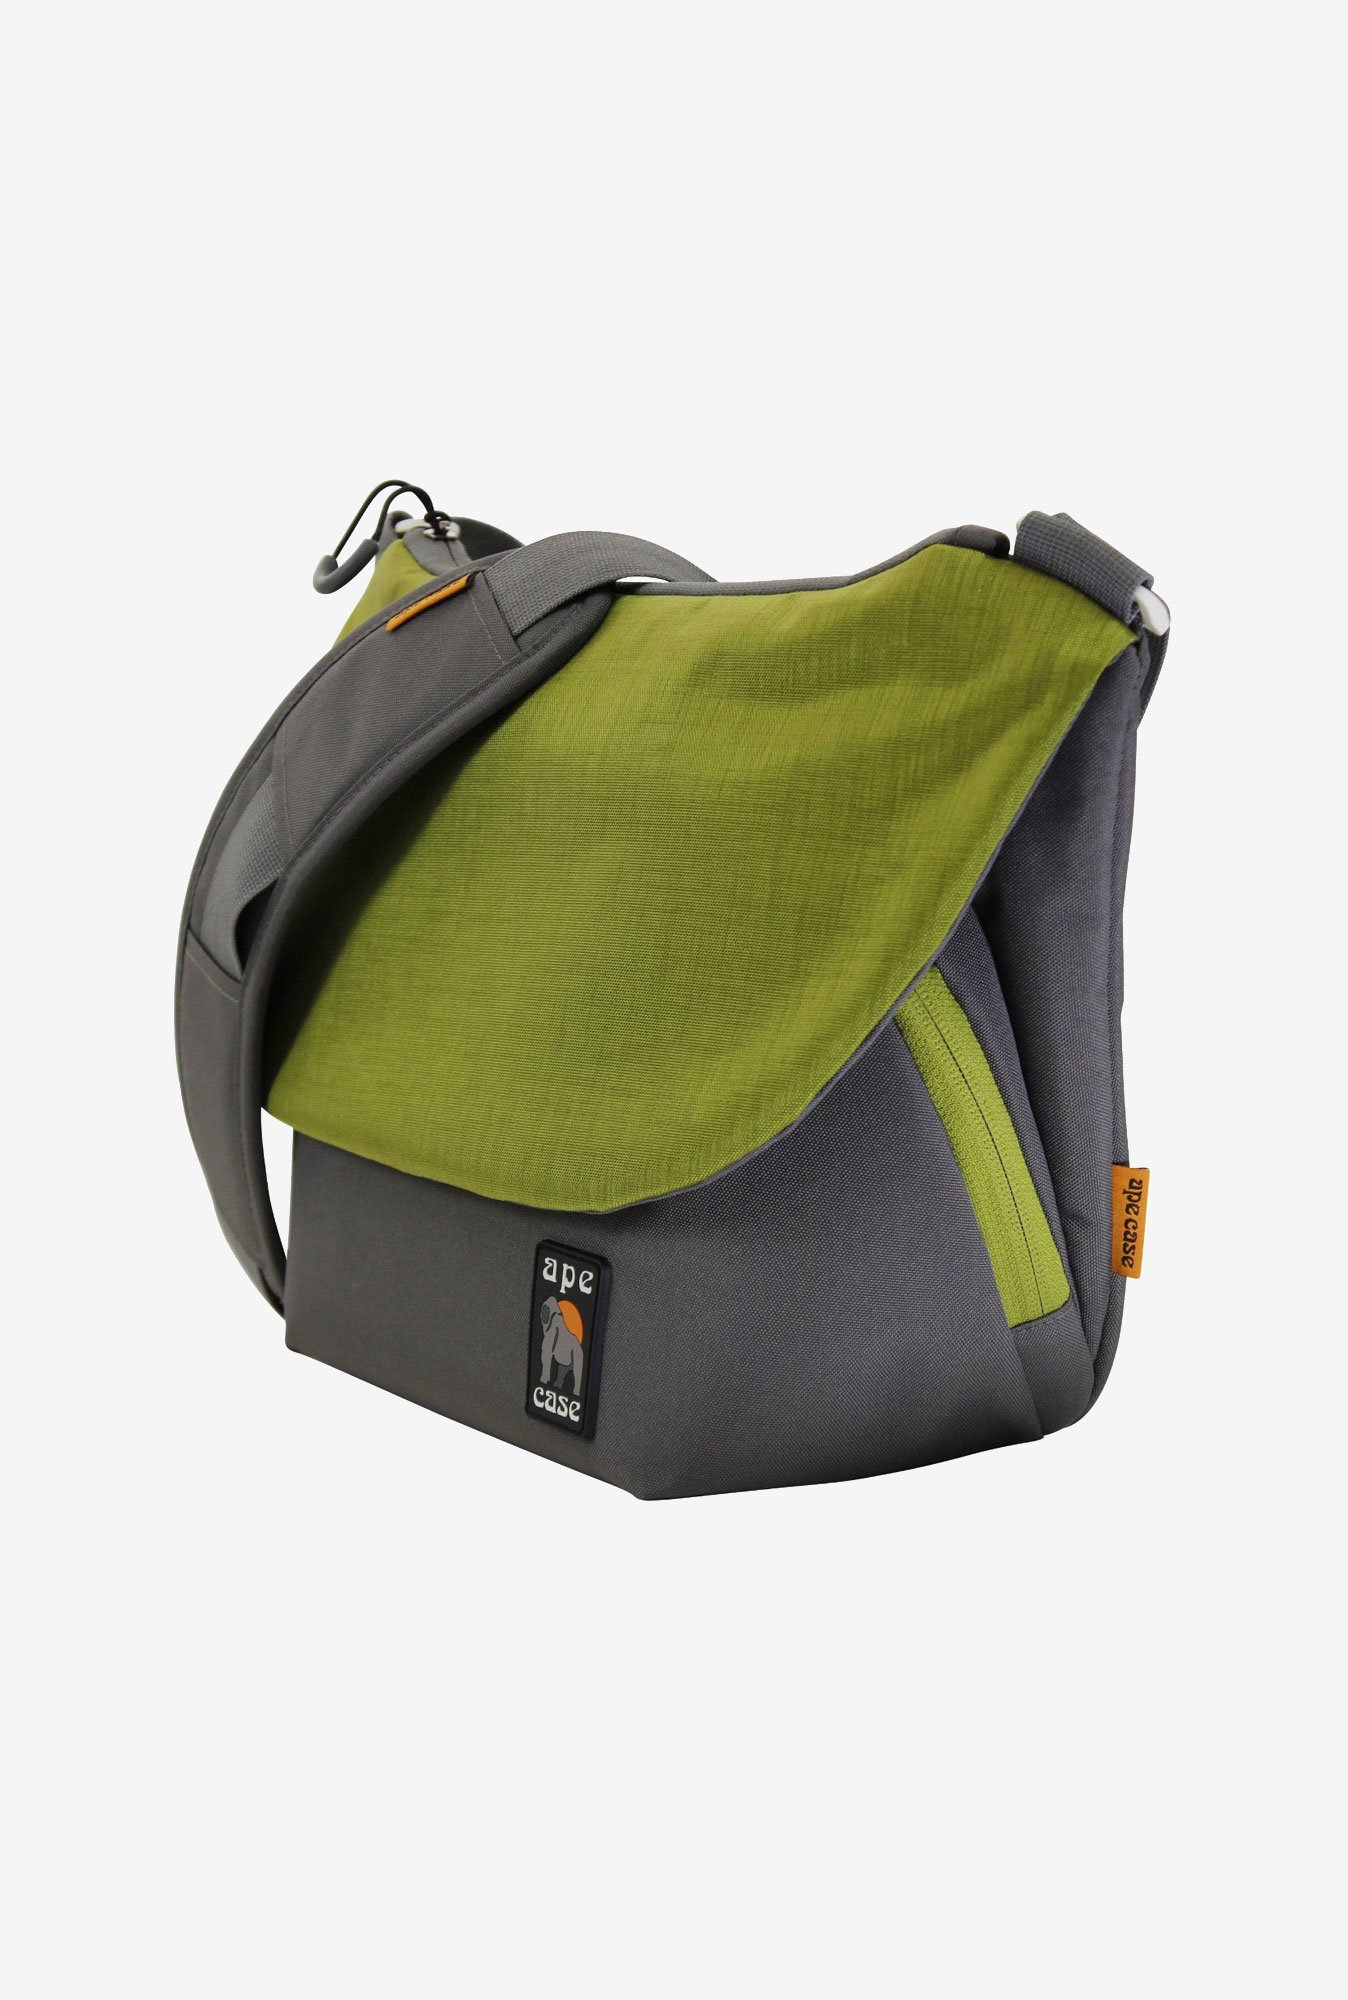 Ape Case AC580G Large Tech Camera Bag (Green & Grey)